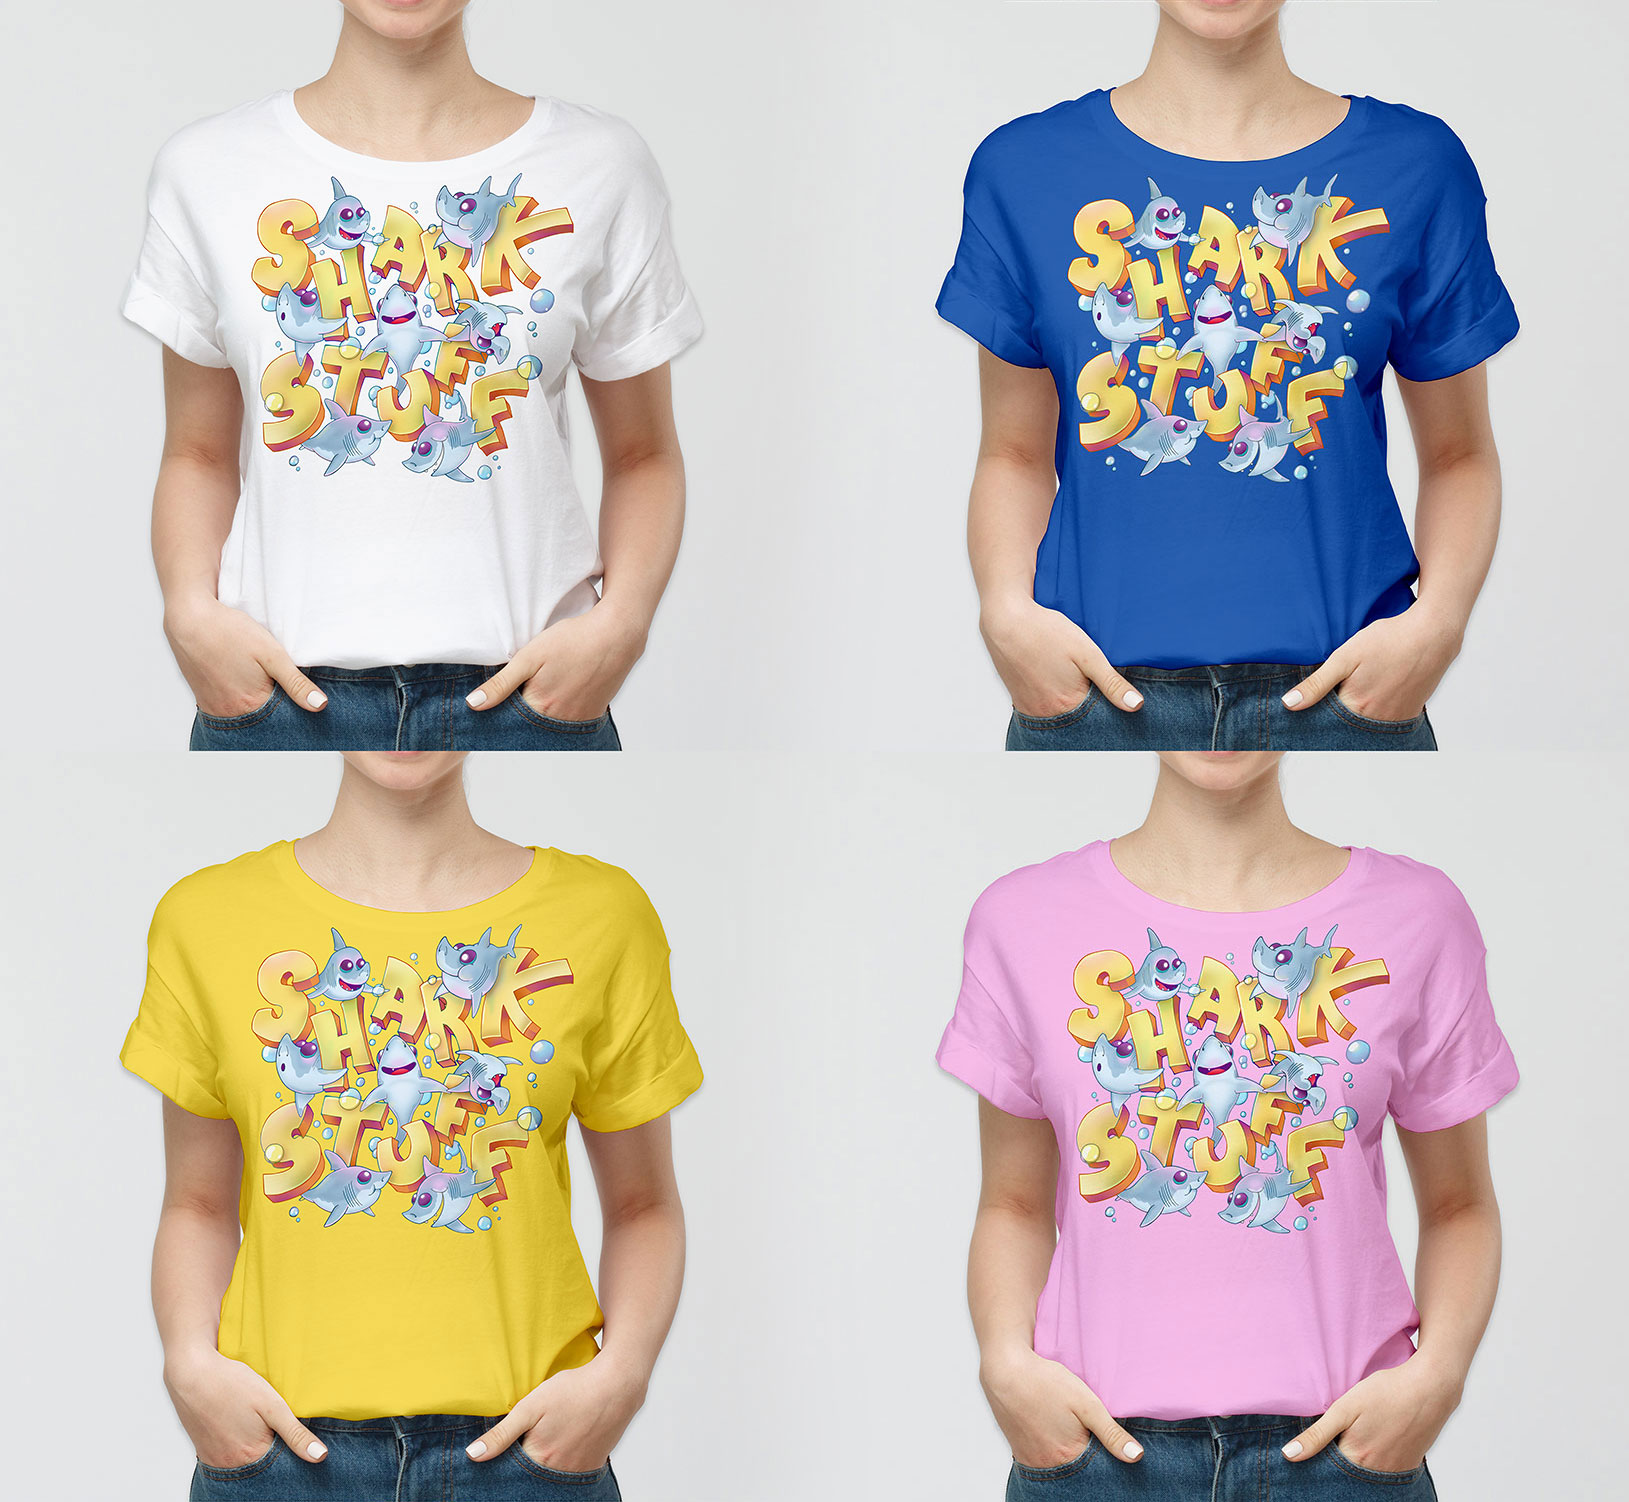 © SharkStuff – Scaled T-shirt drafts